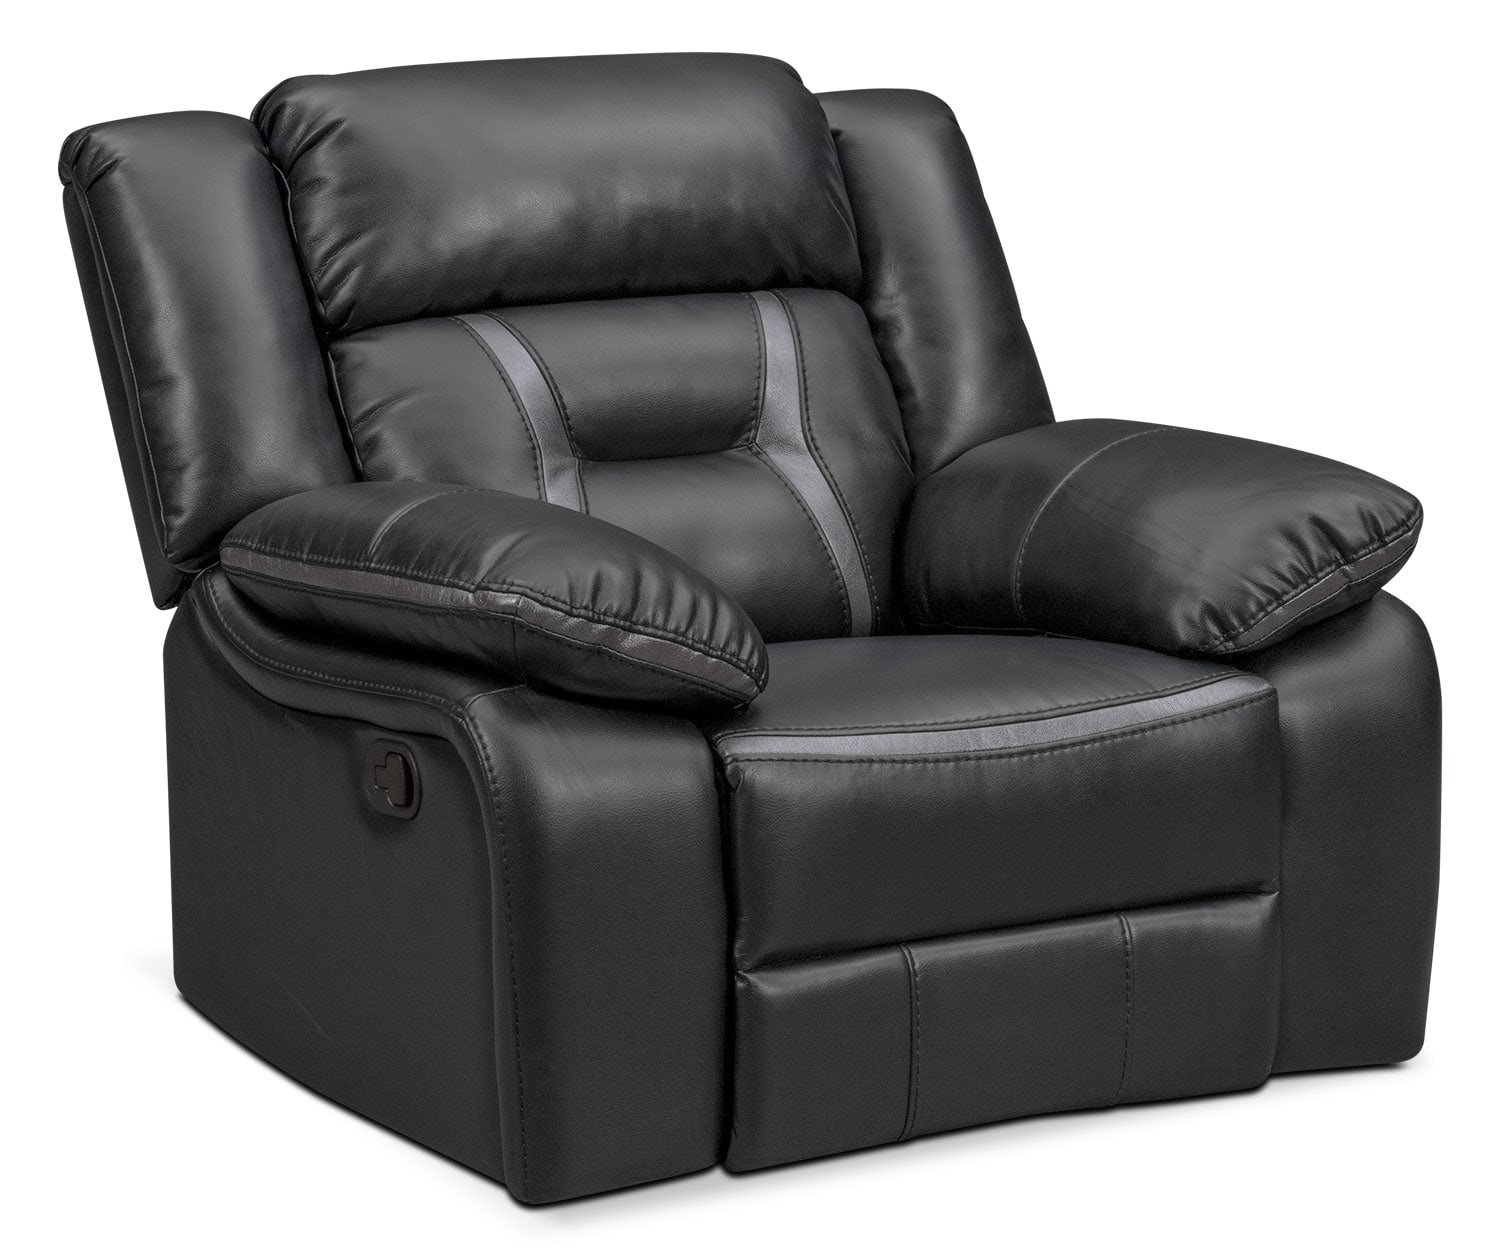 Remi Manual Glider Recliner - Black